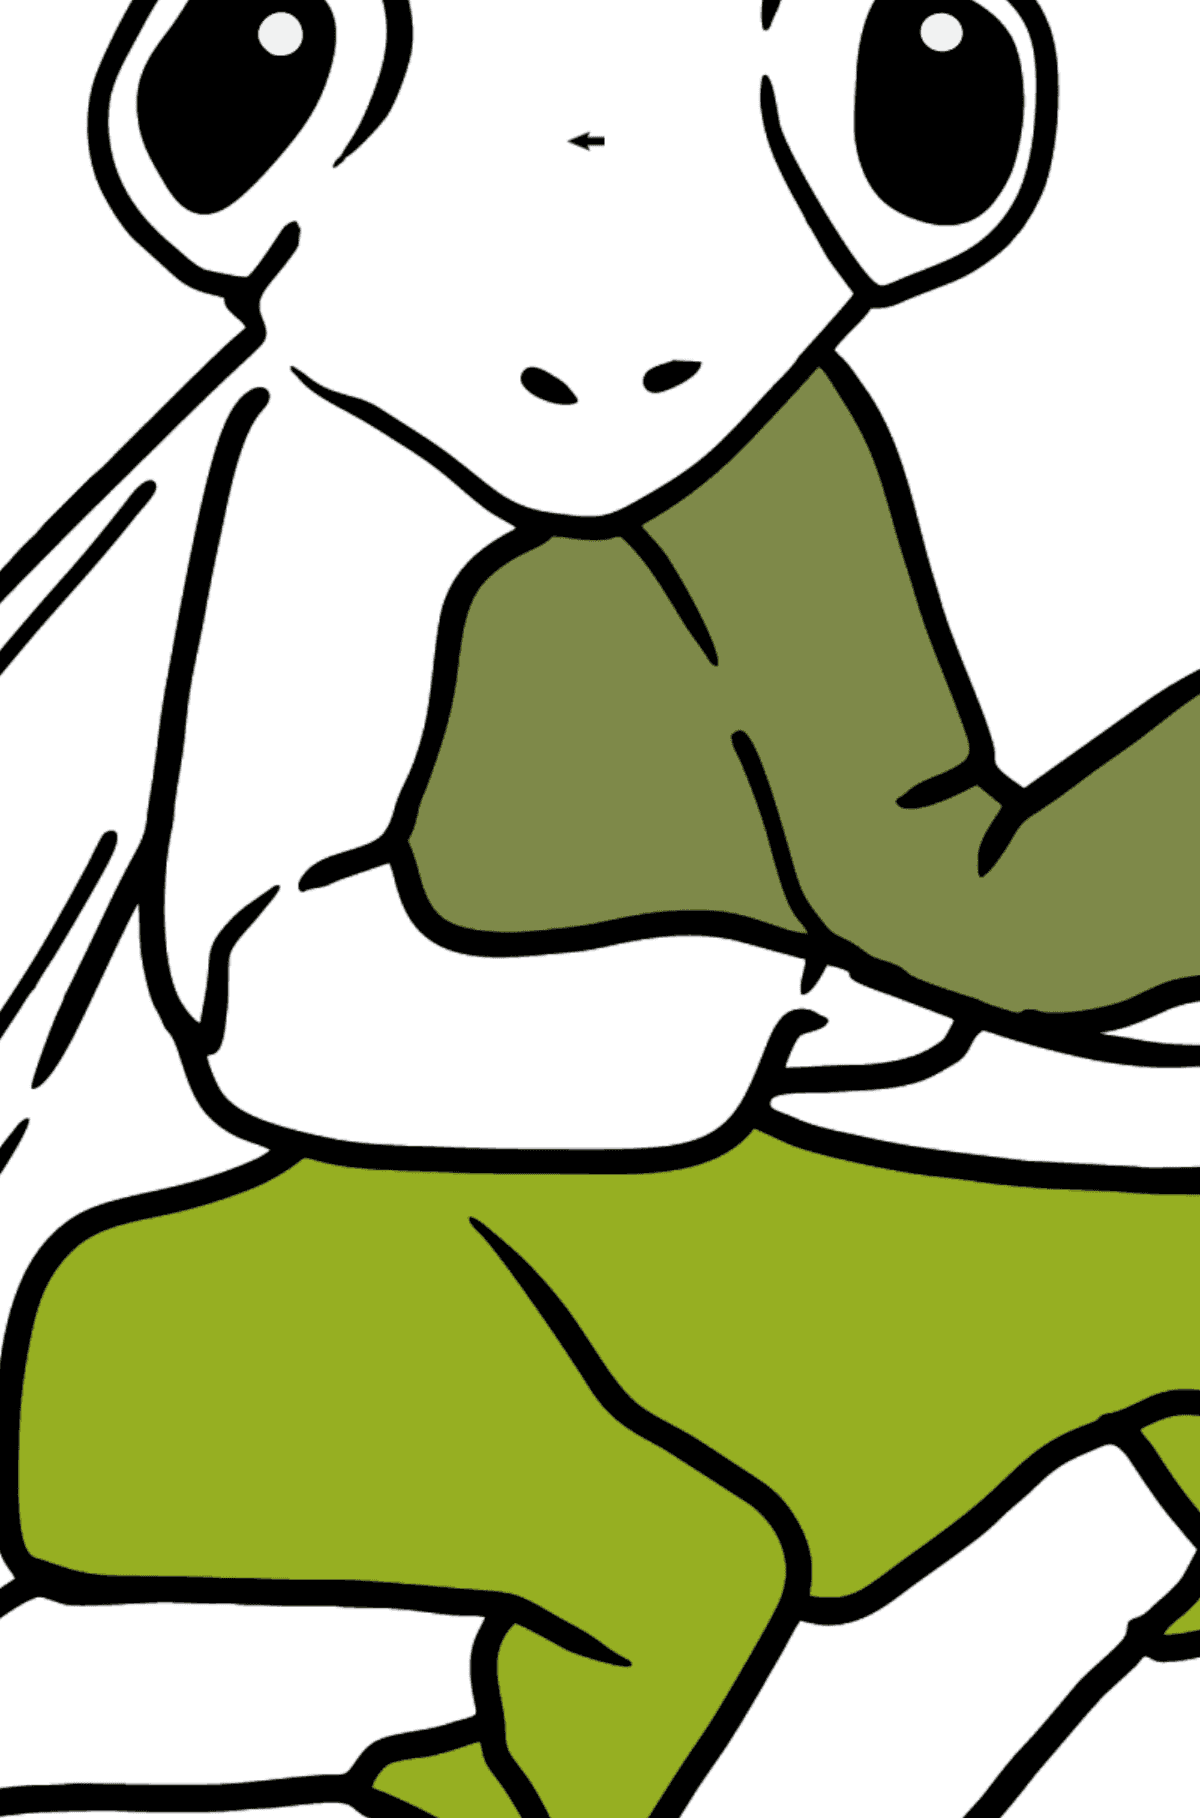 Mantis coloring page - Coloring by Symbols for Kids